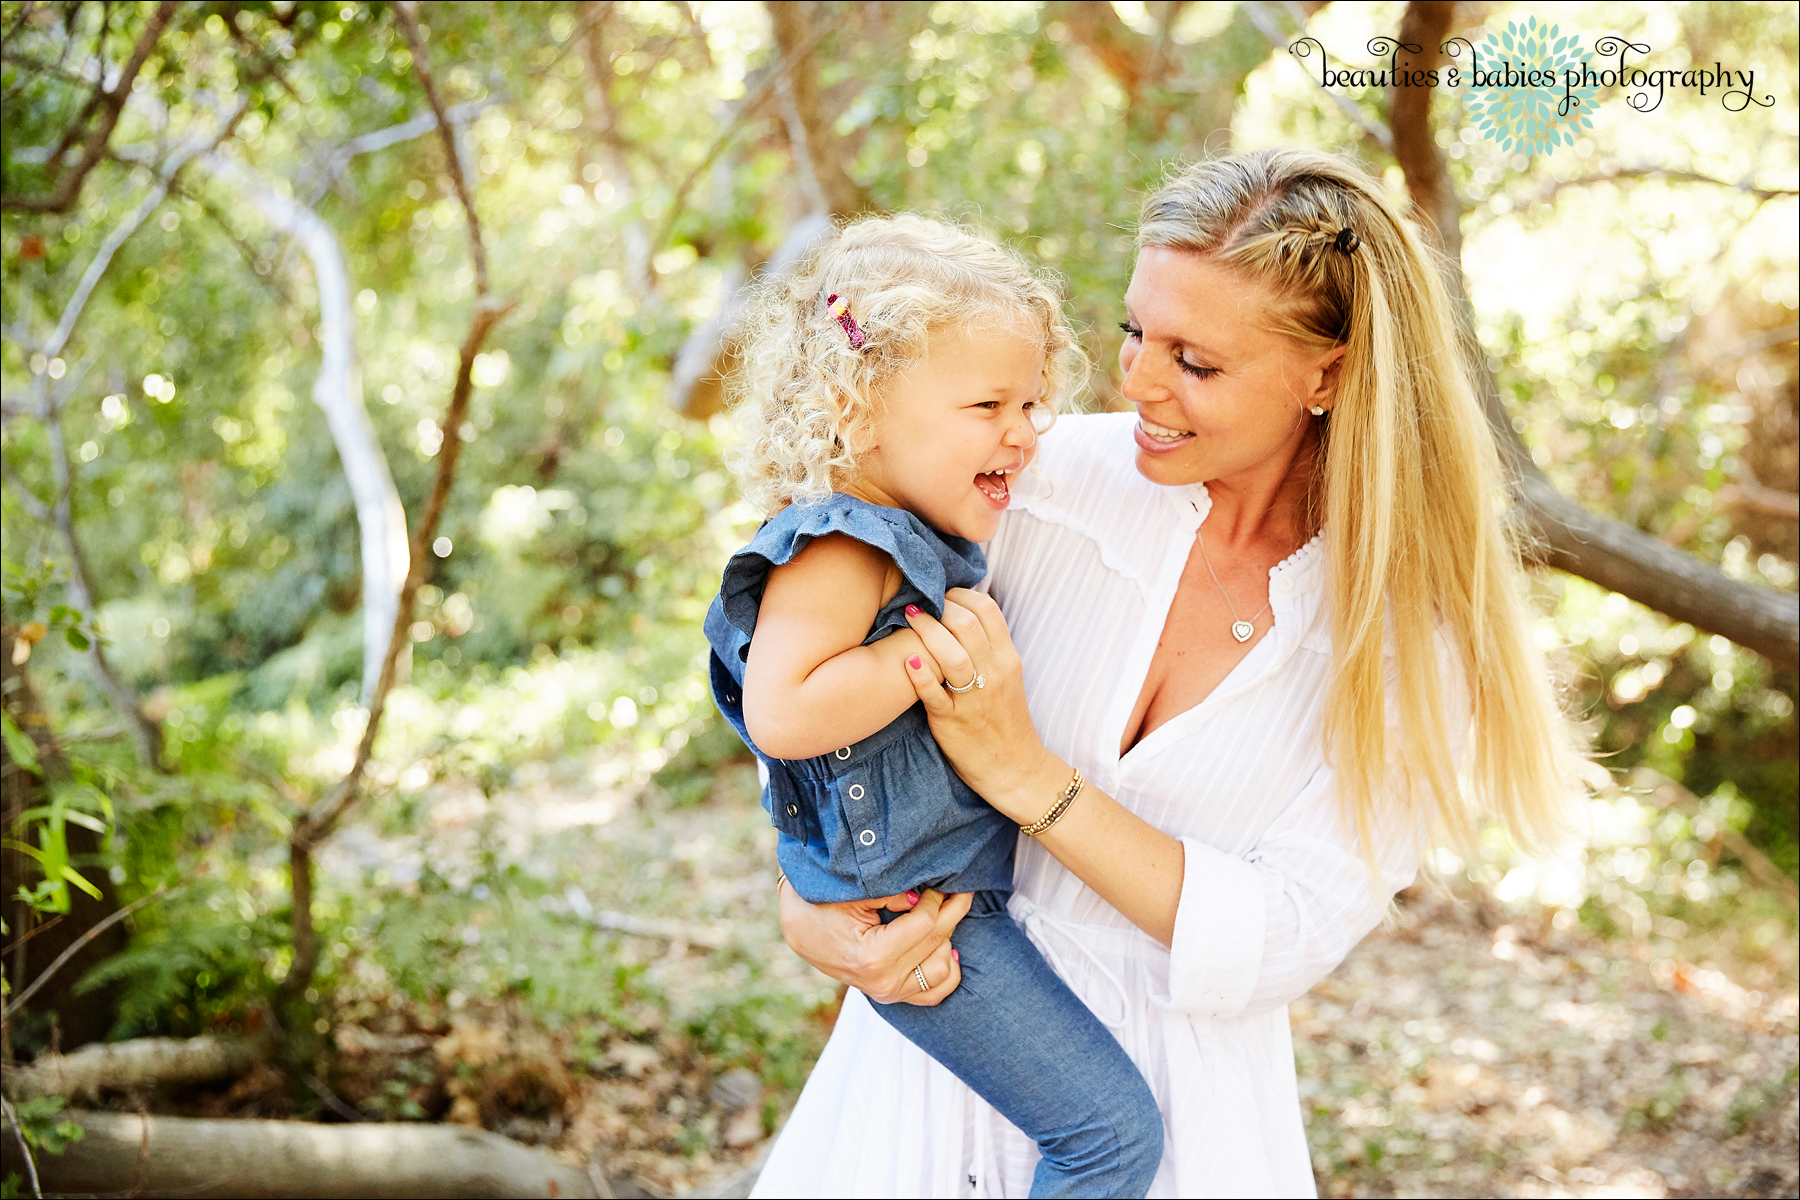 creative outdoor family photography Los Angeles kids photographer